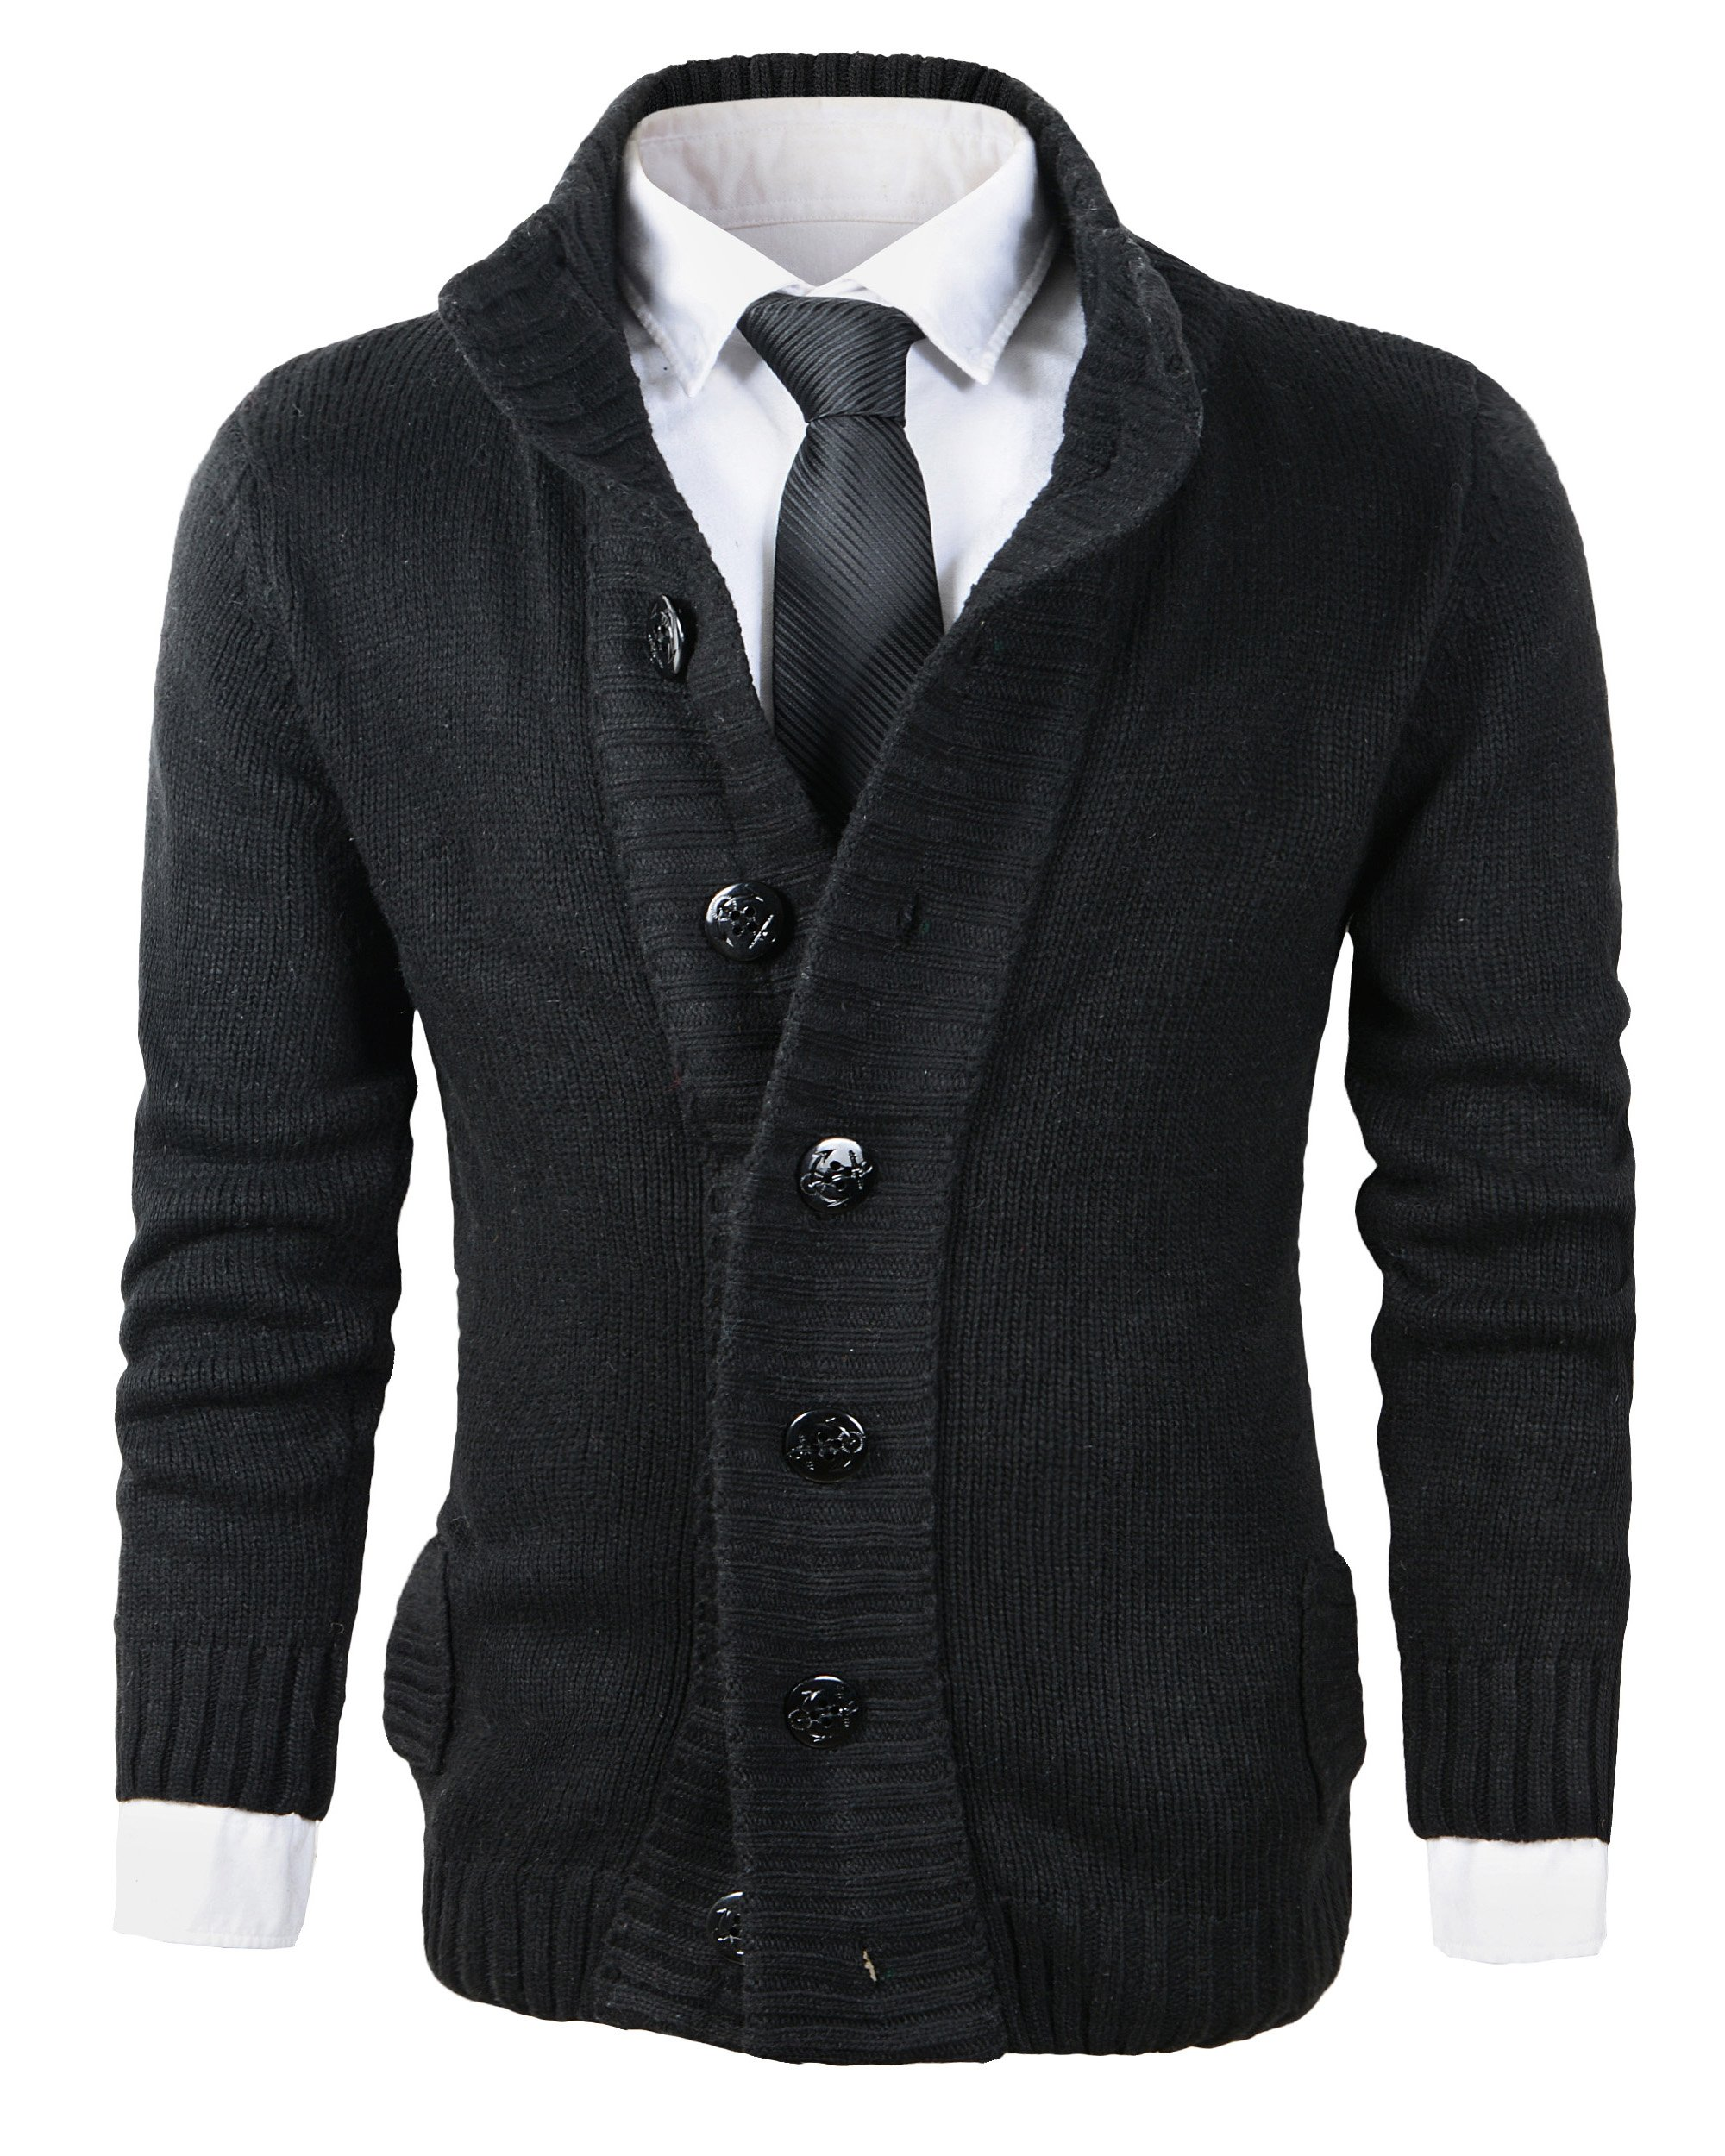 Benibos Men's Button Point Stand Collar Knitted Slim Fit Cardigan Sweater (XS, CYMYBlack)